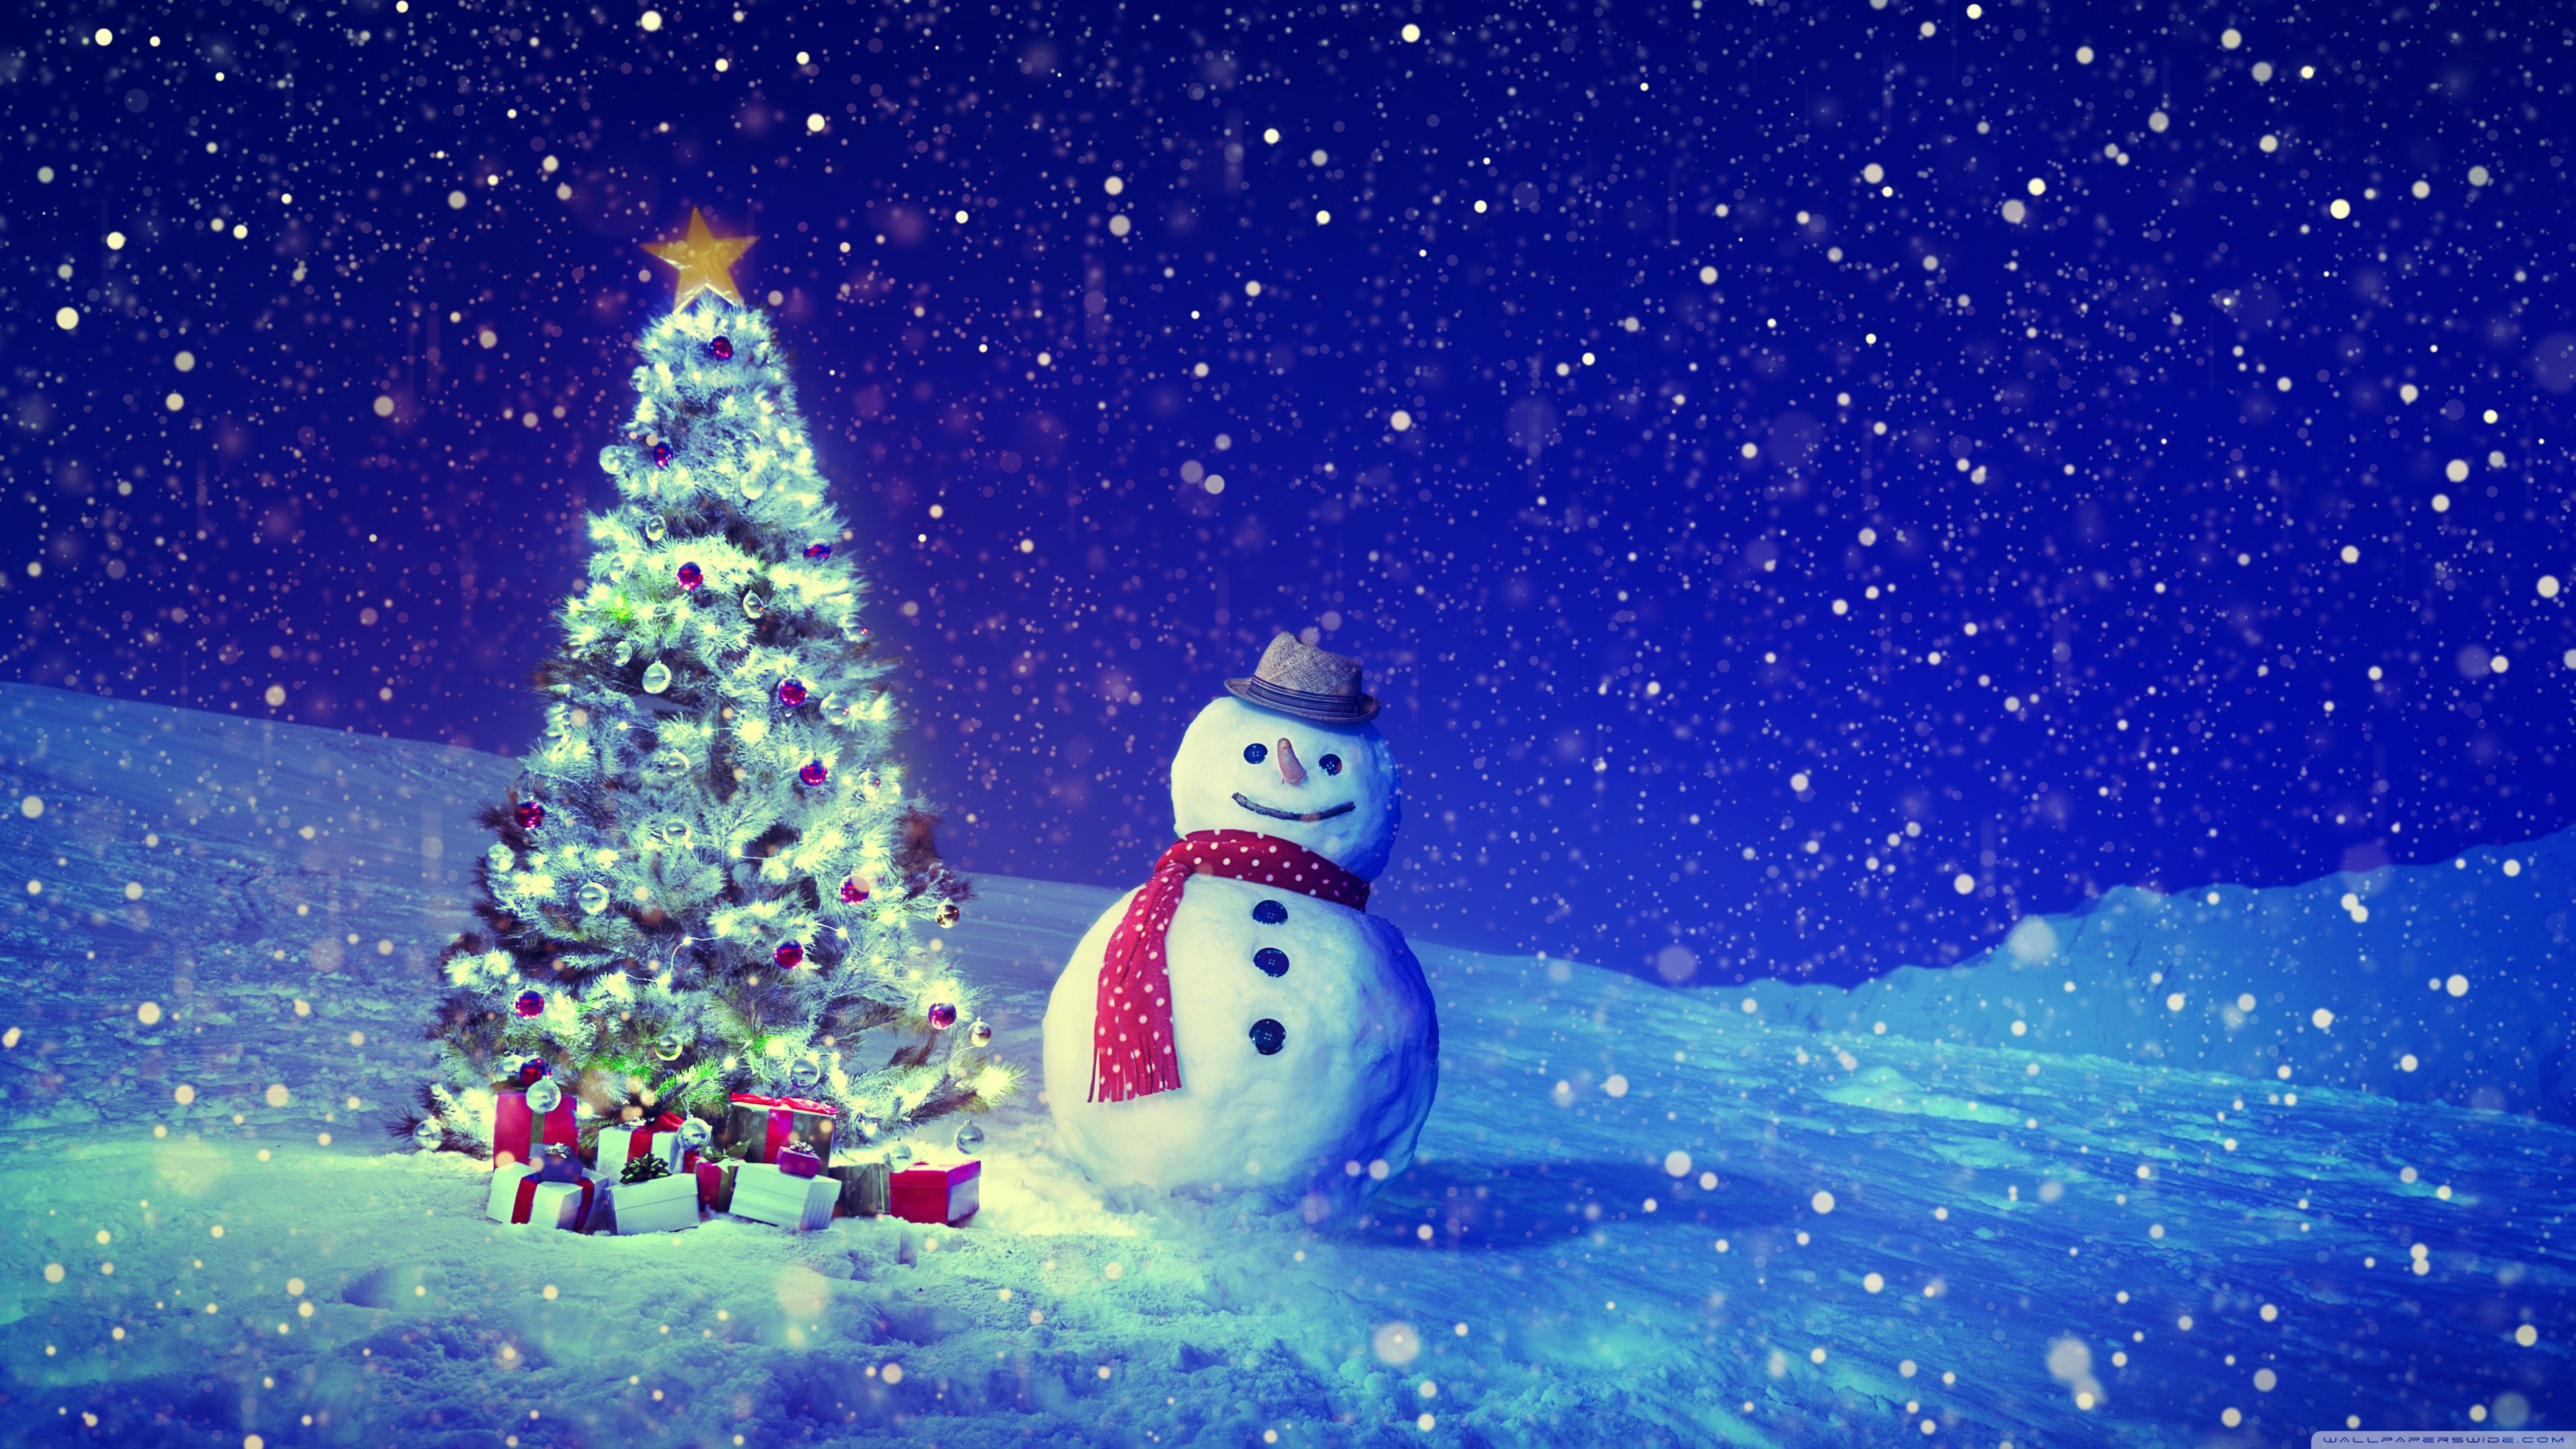 3840 X 2160 Christmas Wallpapers Top Free 3840 X 2160